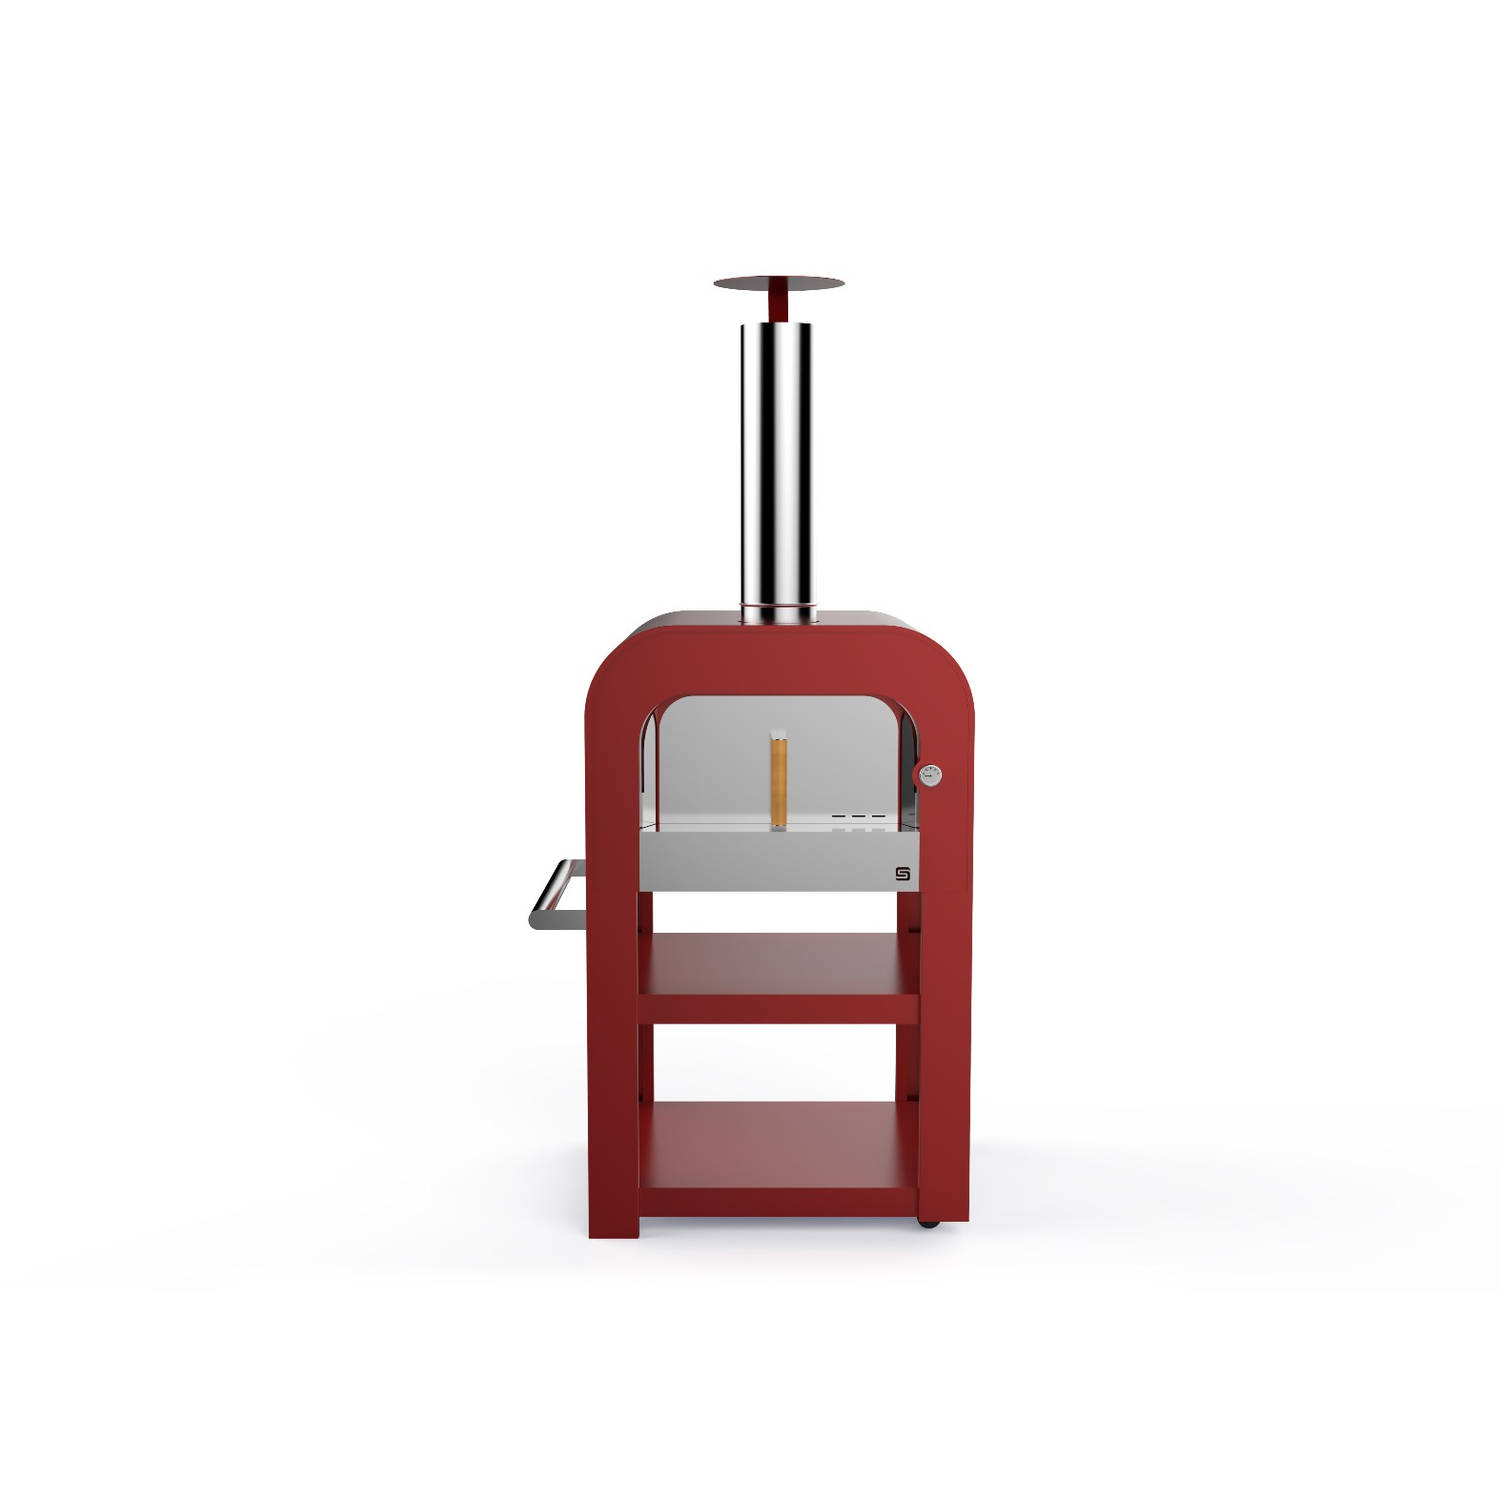 Sarom Fuoco Pizzaoven Fast Oven Houtskool Hout Rood